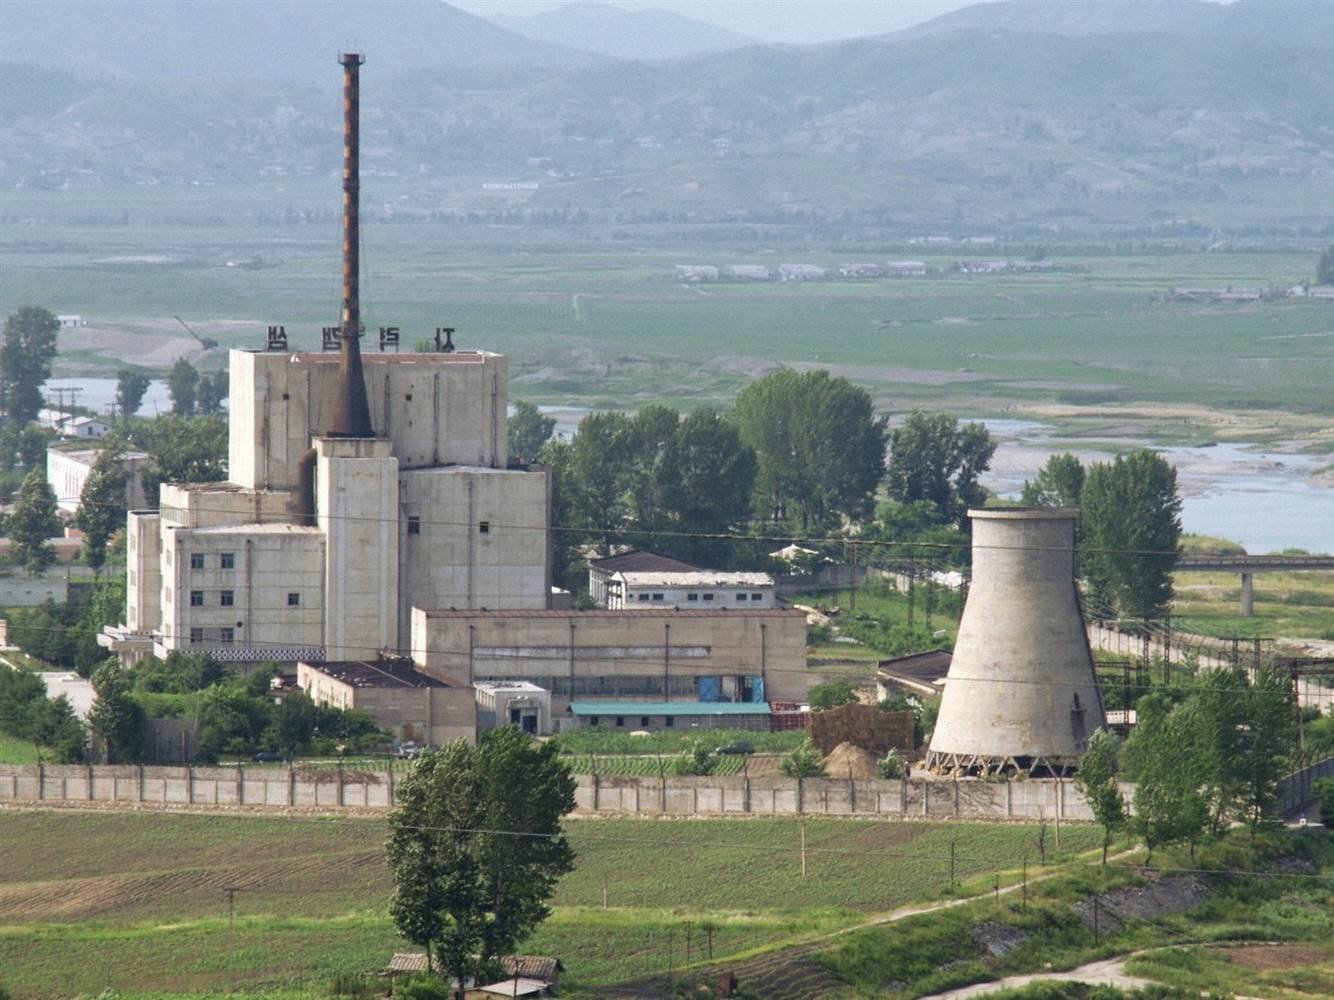 File photo shows North Korea's Yongbyon nuclear complex before its cooling tower was demolished on June 27, 2008. (Kyodo)